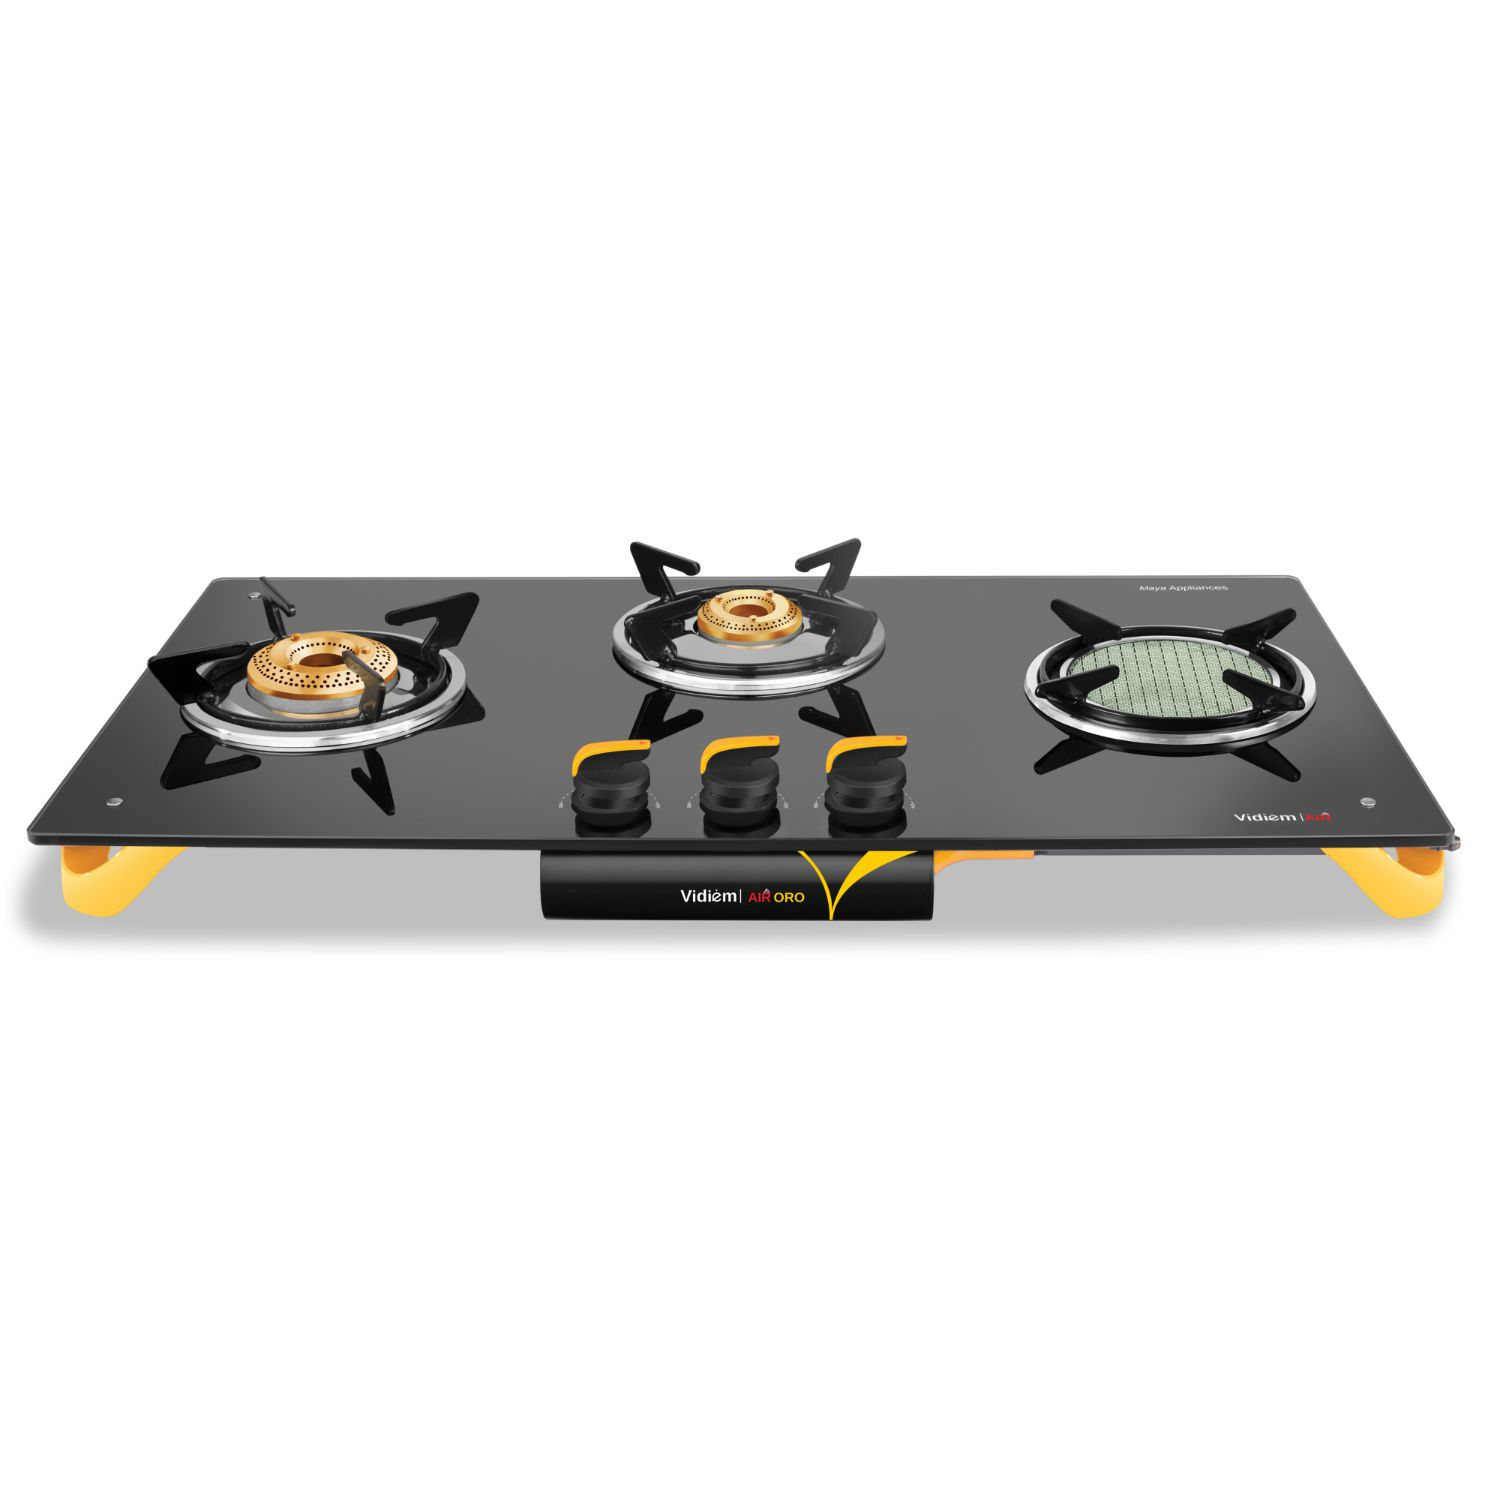 Vidiem GS G3 140 A Gas Cooktop (3 Burner)